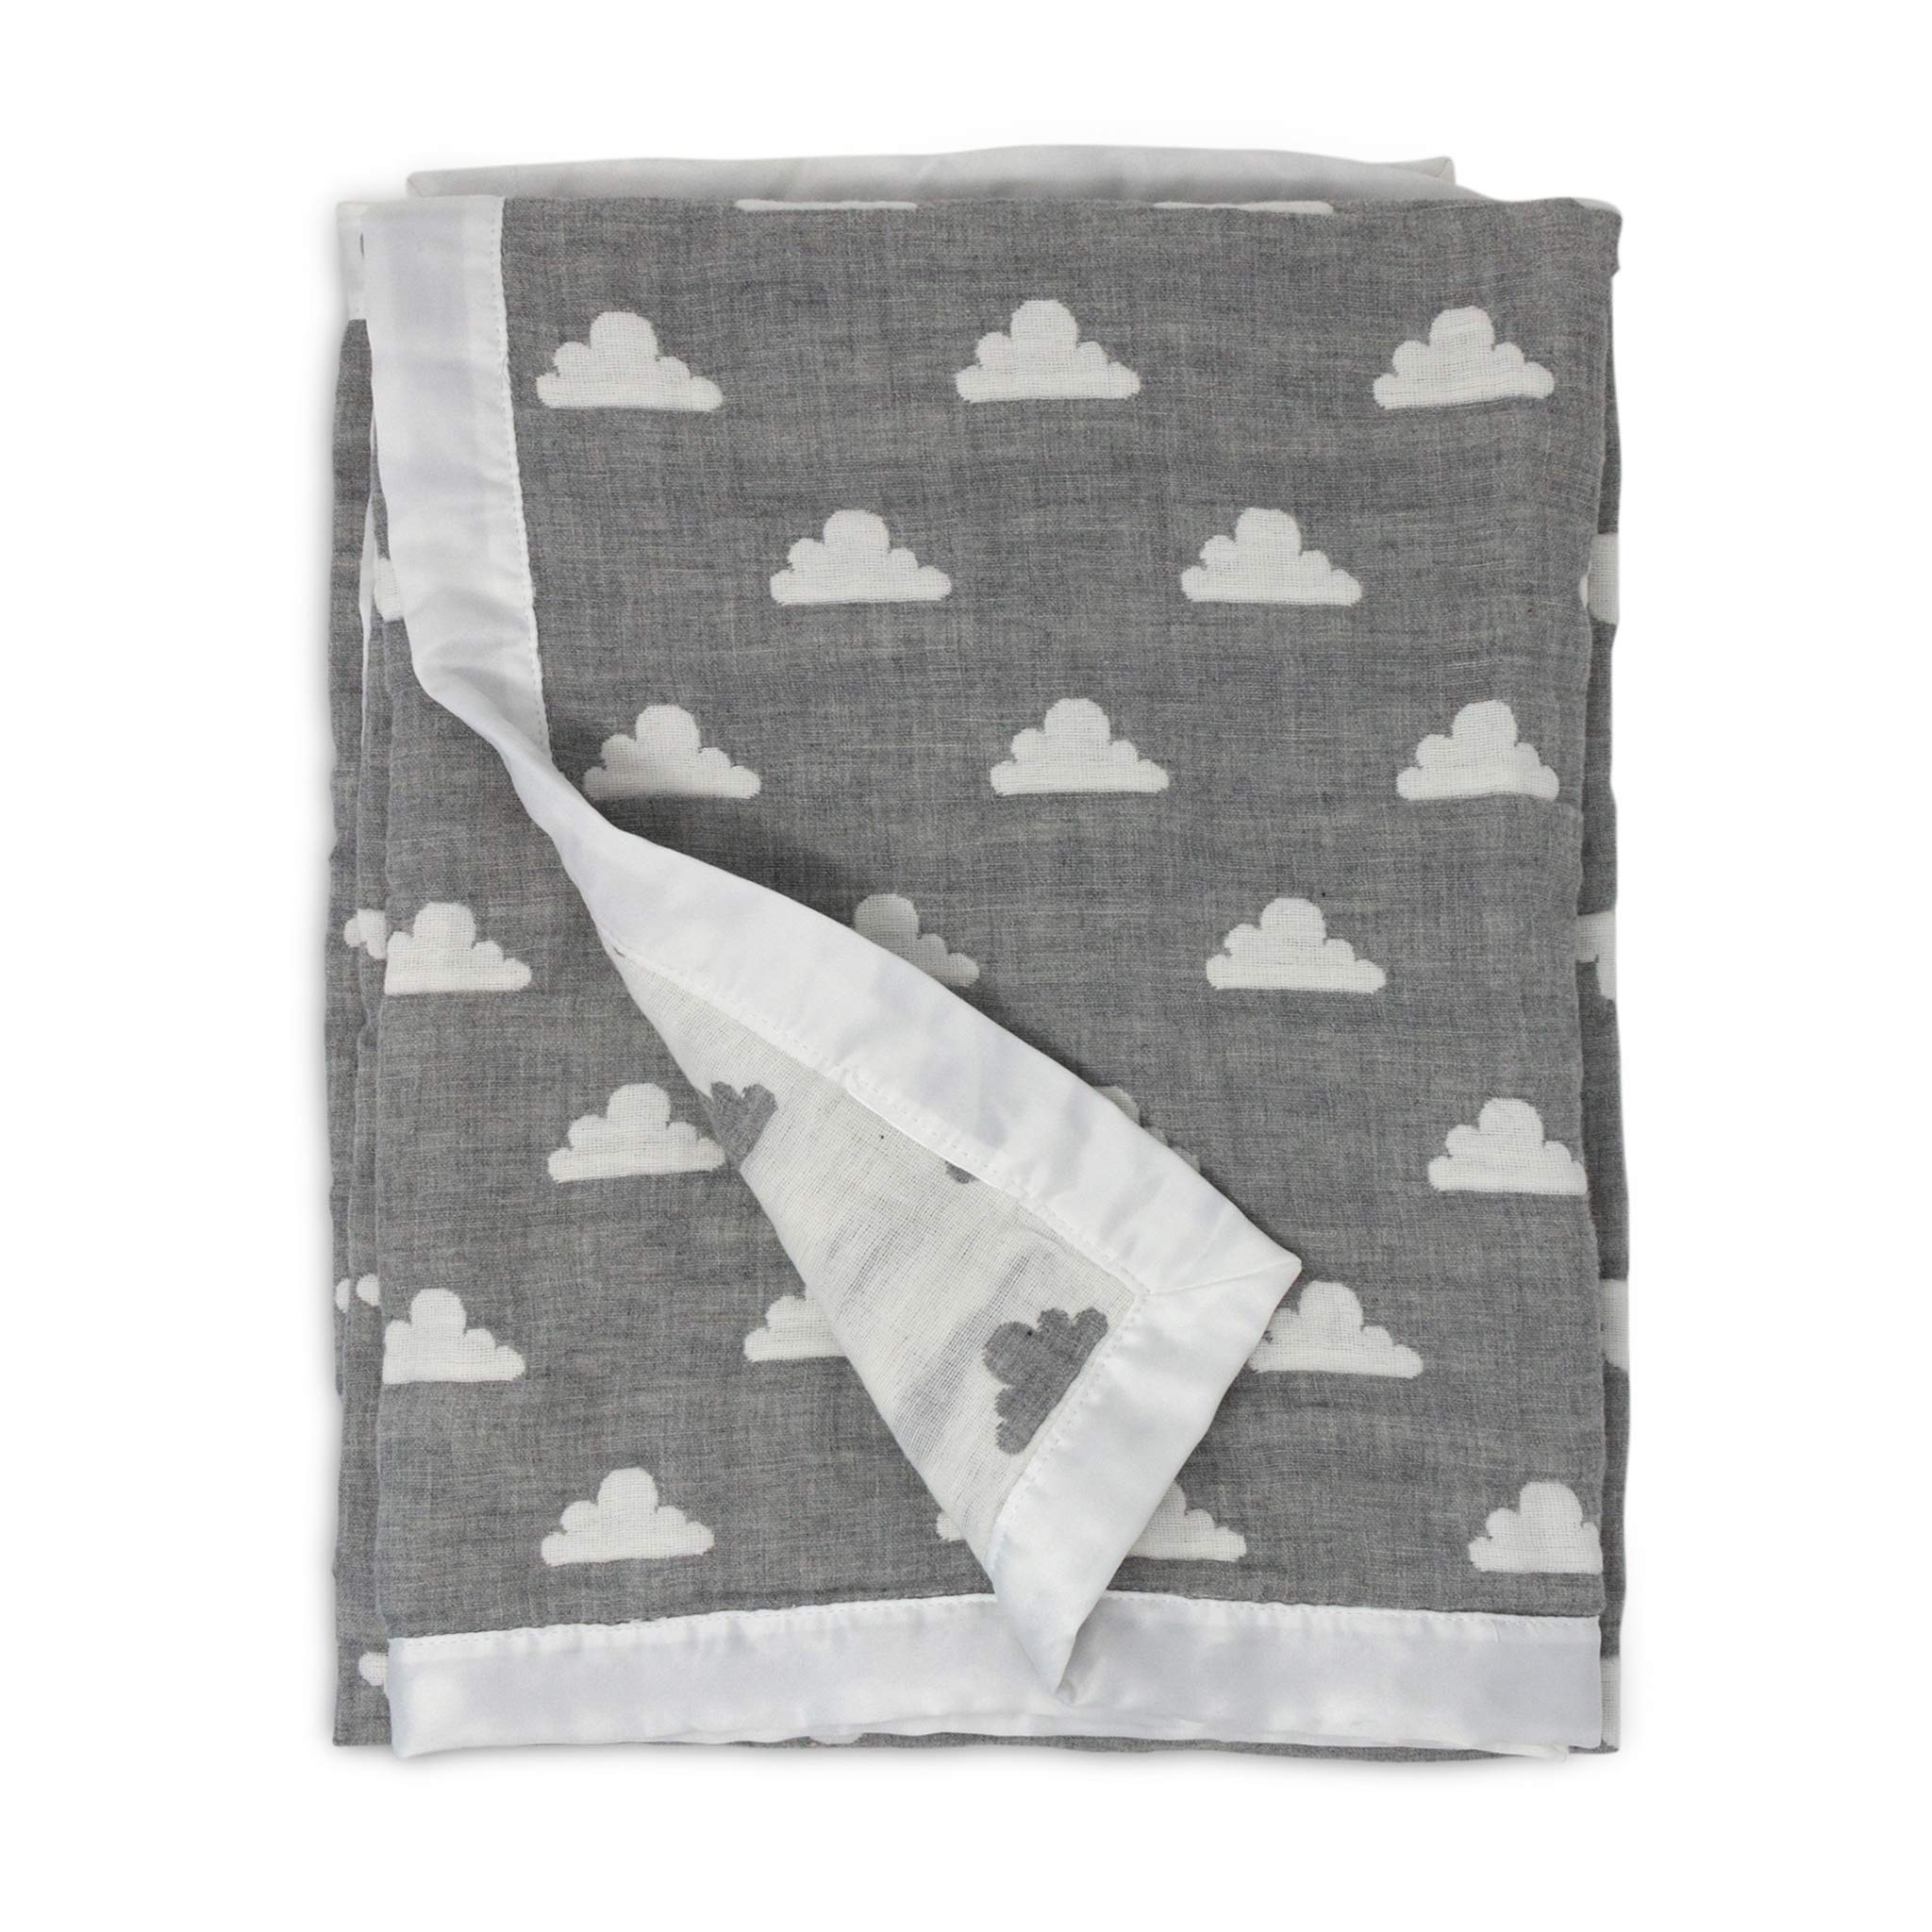 Living Textiles Muslin Jacquard Grey Clouds Soft Baby Blanket Premium Quality 100% Cotton for Best Comfort | Double Layer,Swaddle,Receiving,Infant,Toddler,Newborn,Nursery,Boy,Girl,Gift | 40x30 Inch